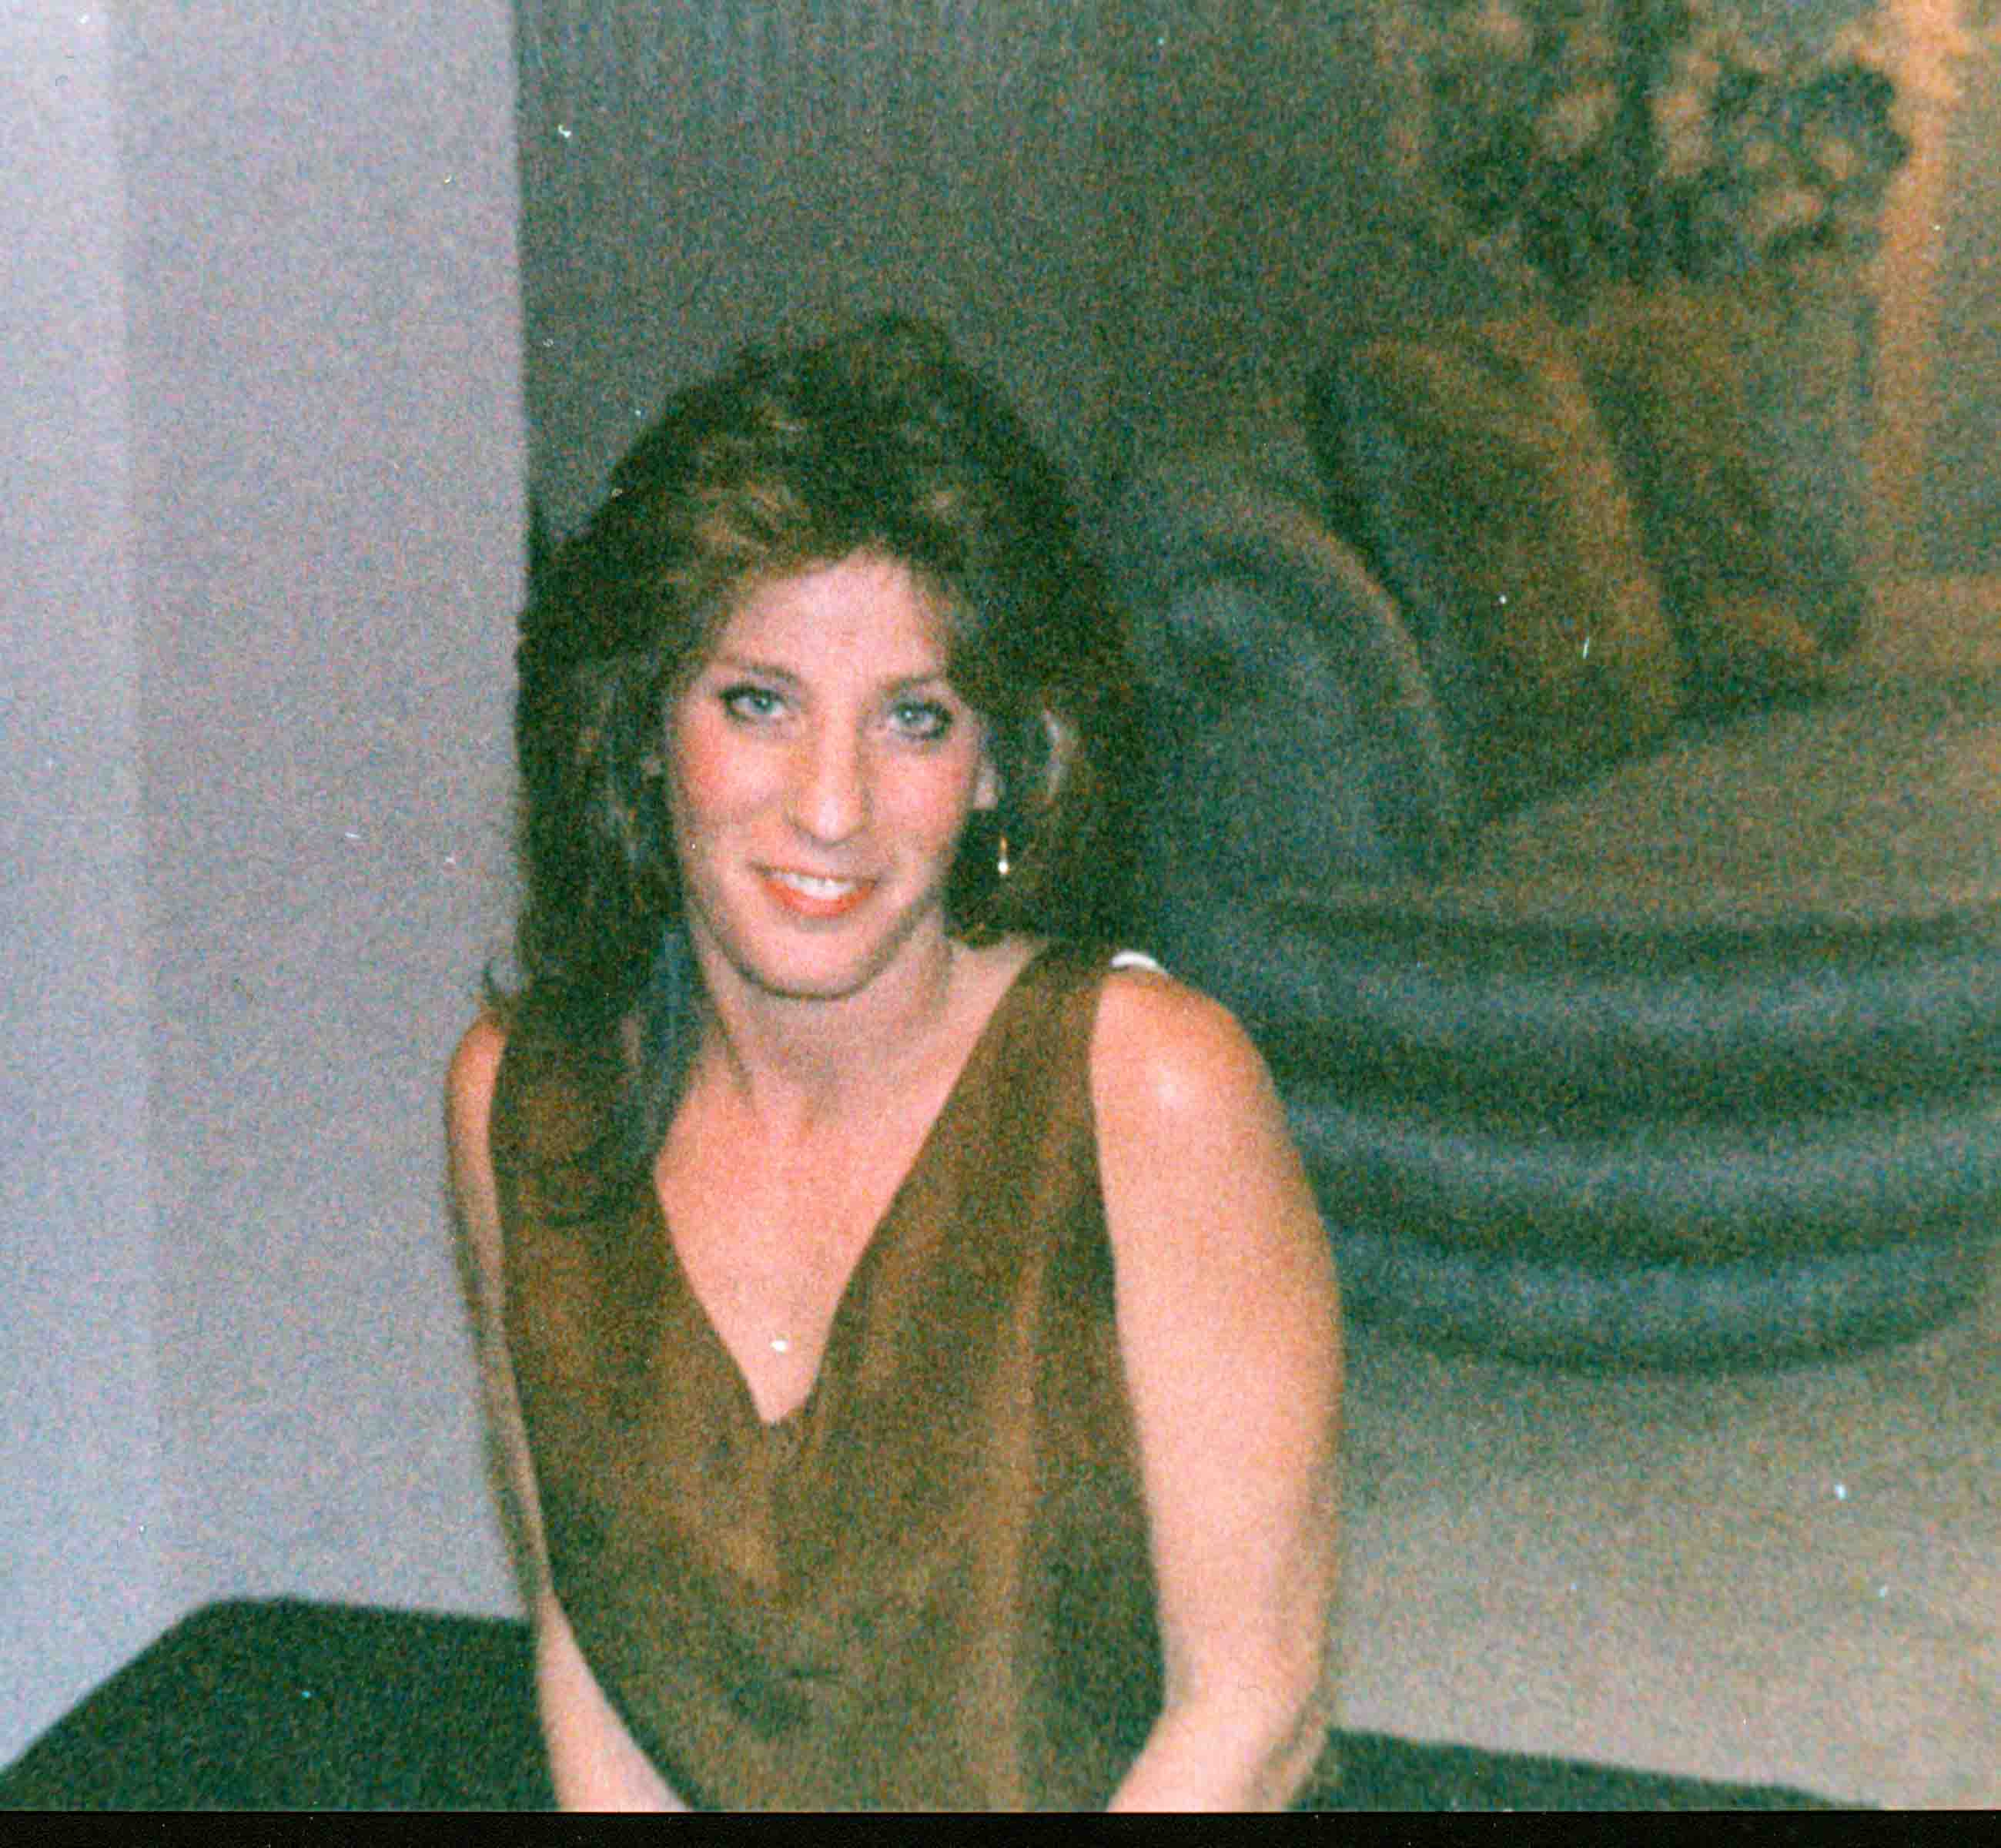 Michelle Lisa Adler 9/22/69 - 4/7/03 (A Roadruuner from the Class of 1981.)